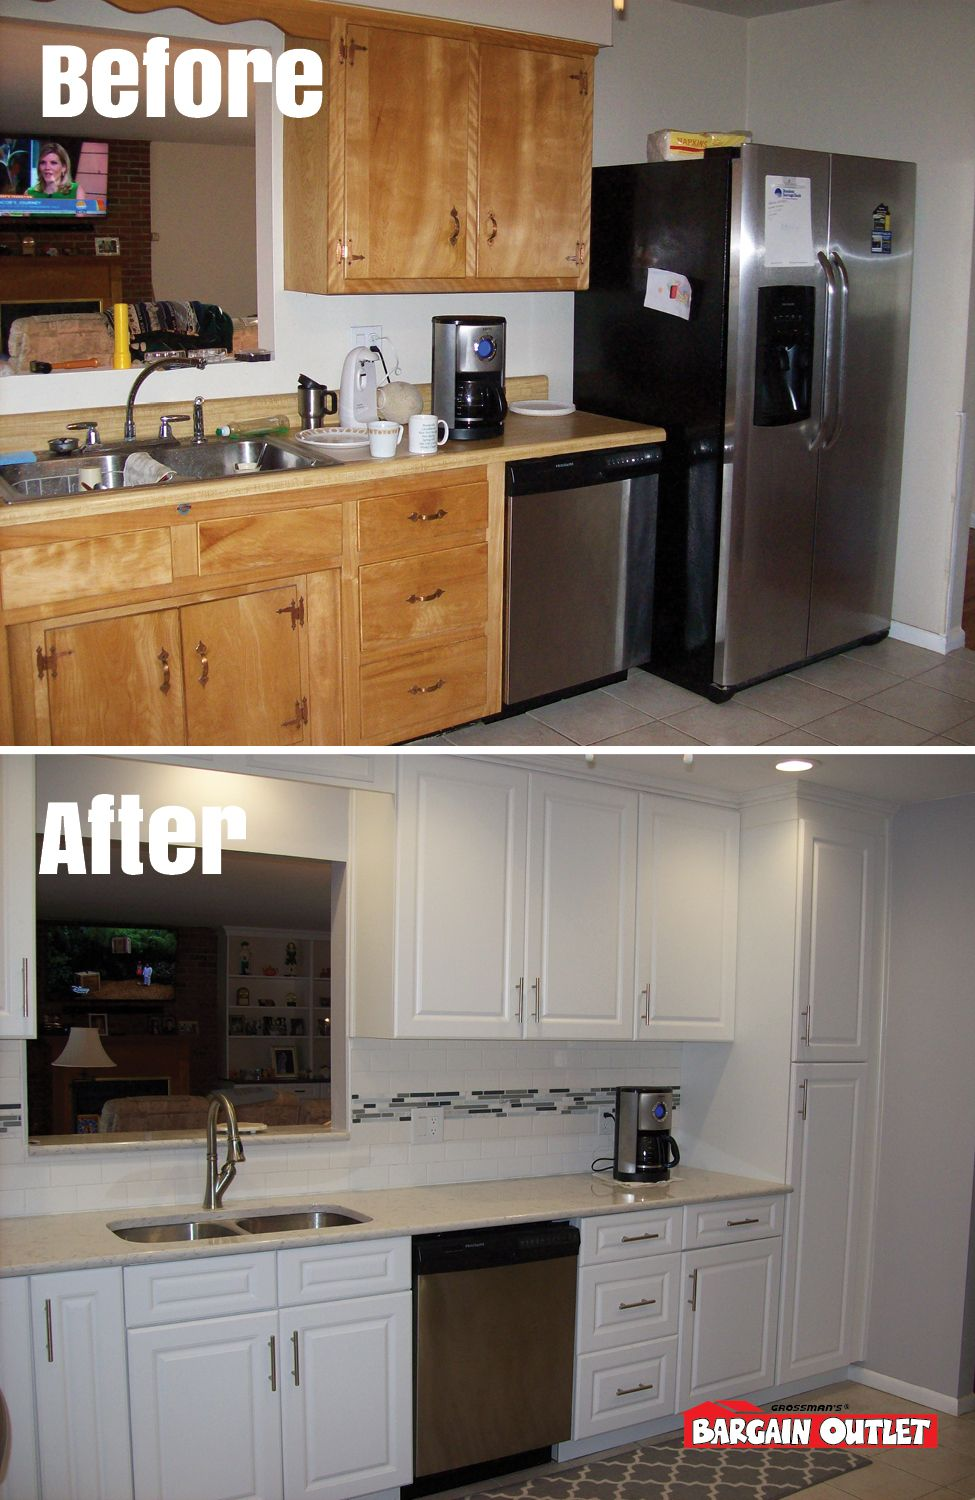 Pin By S Chrobak On House Trailer In 2019 Kitchen Cabinets